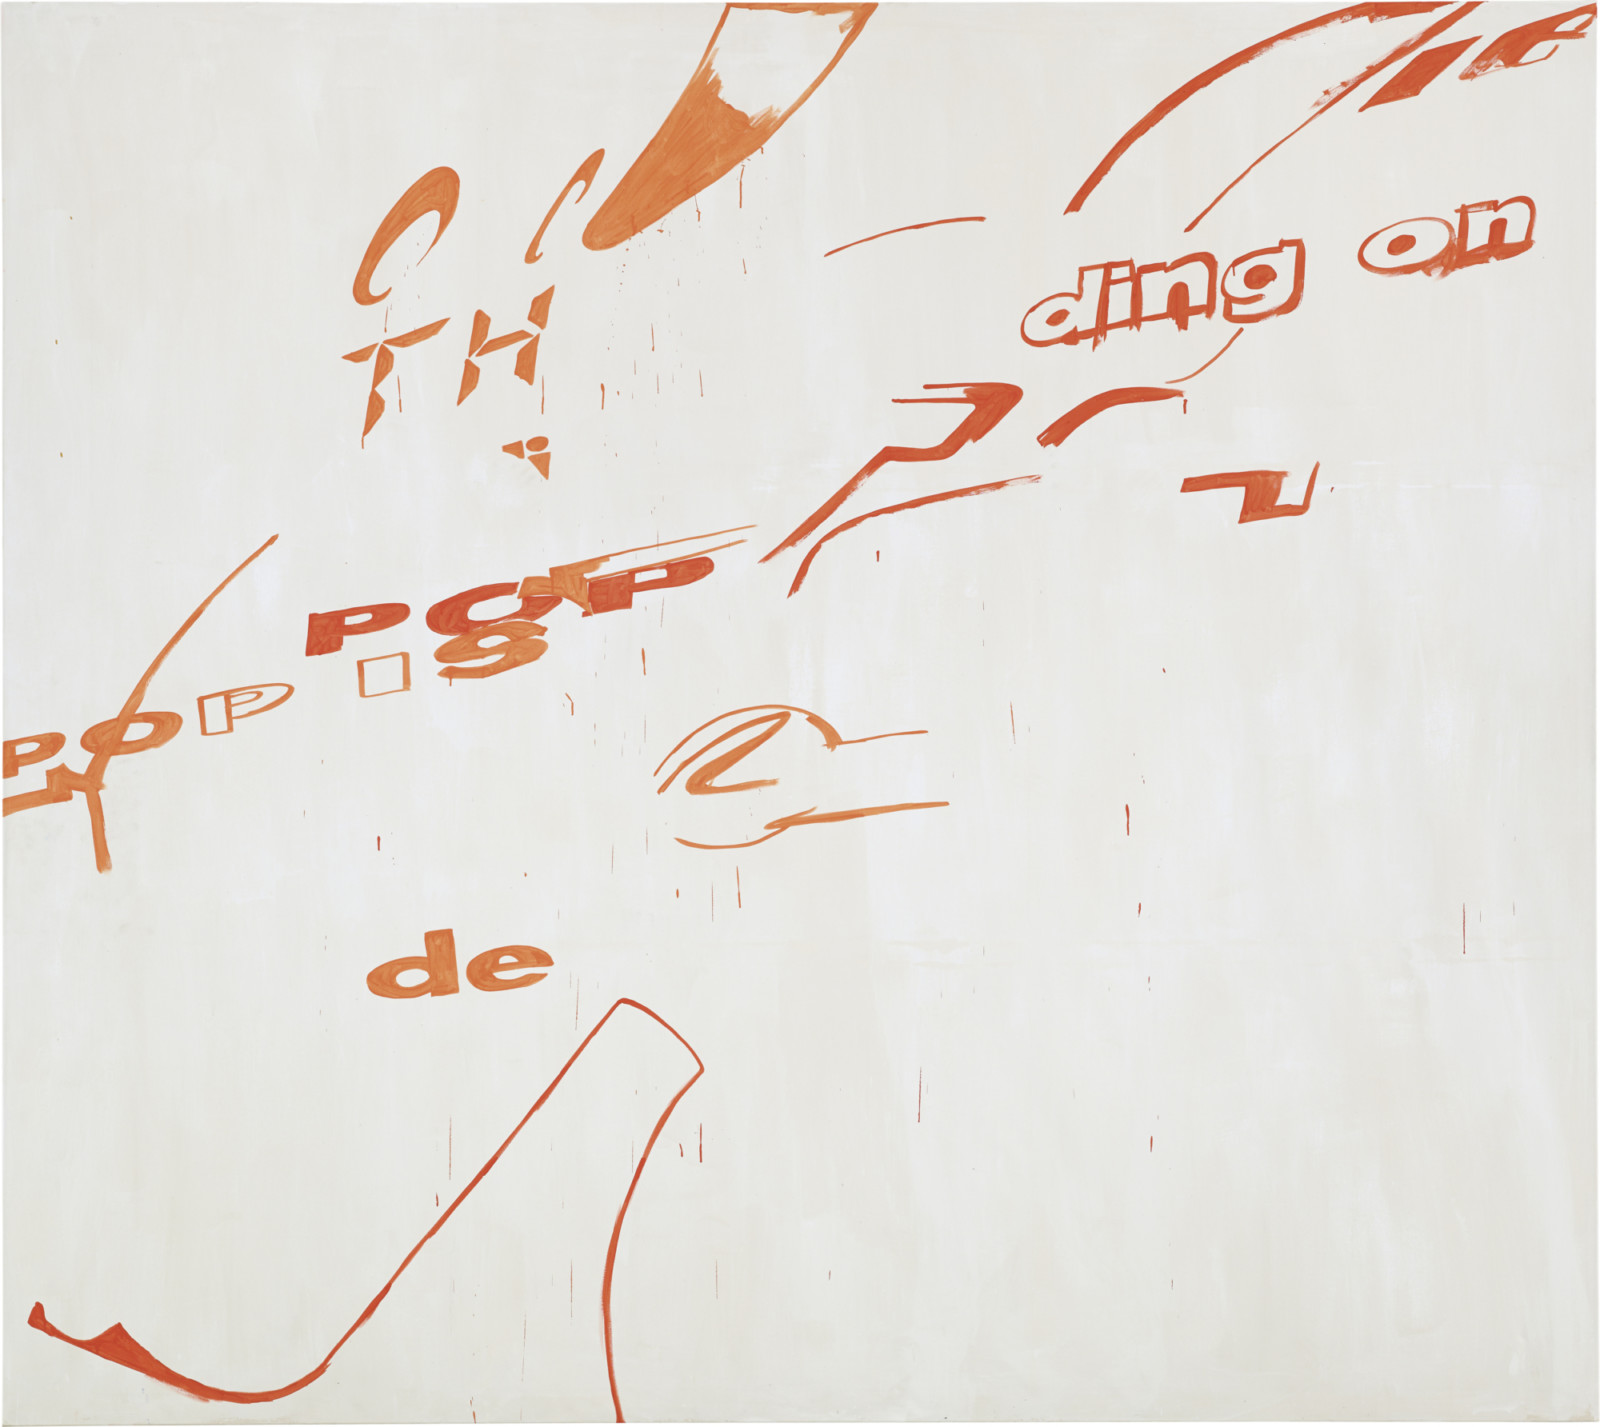 Painting by Michel Majerus, , dated 2000